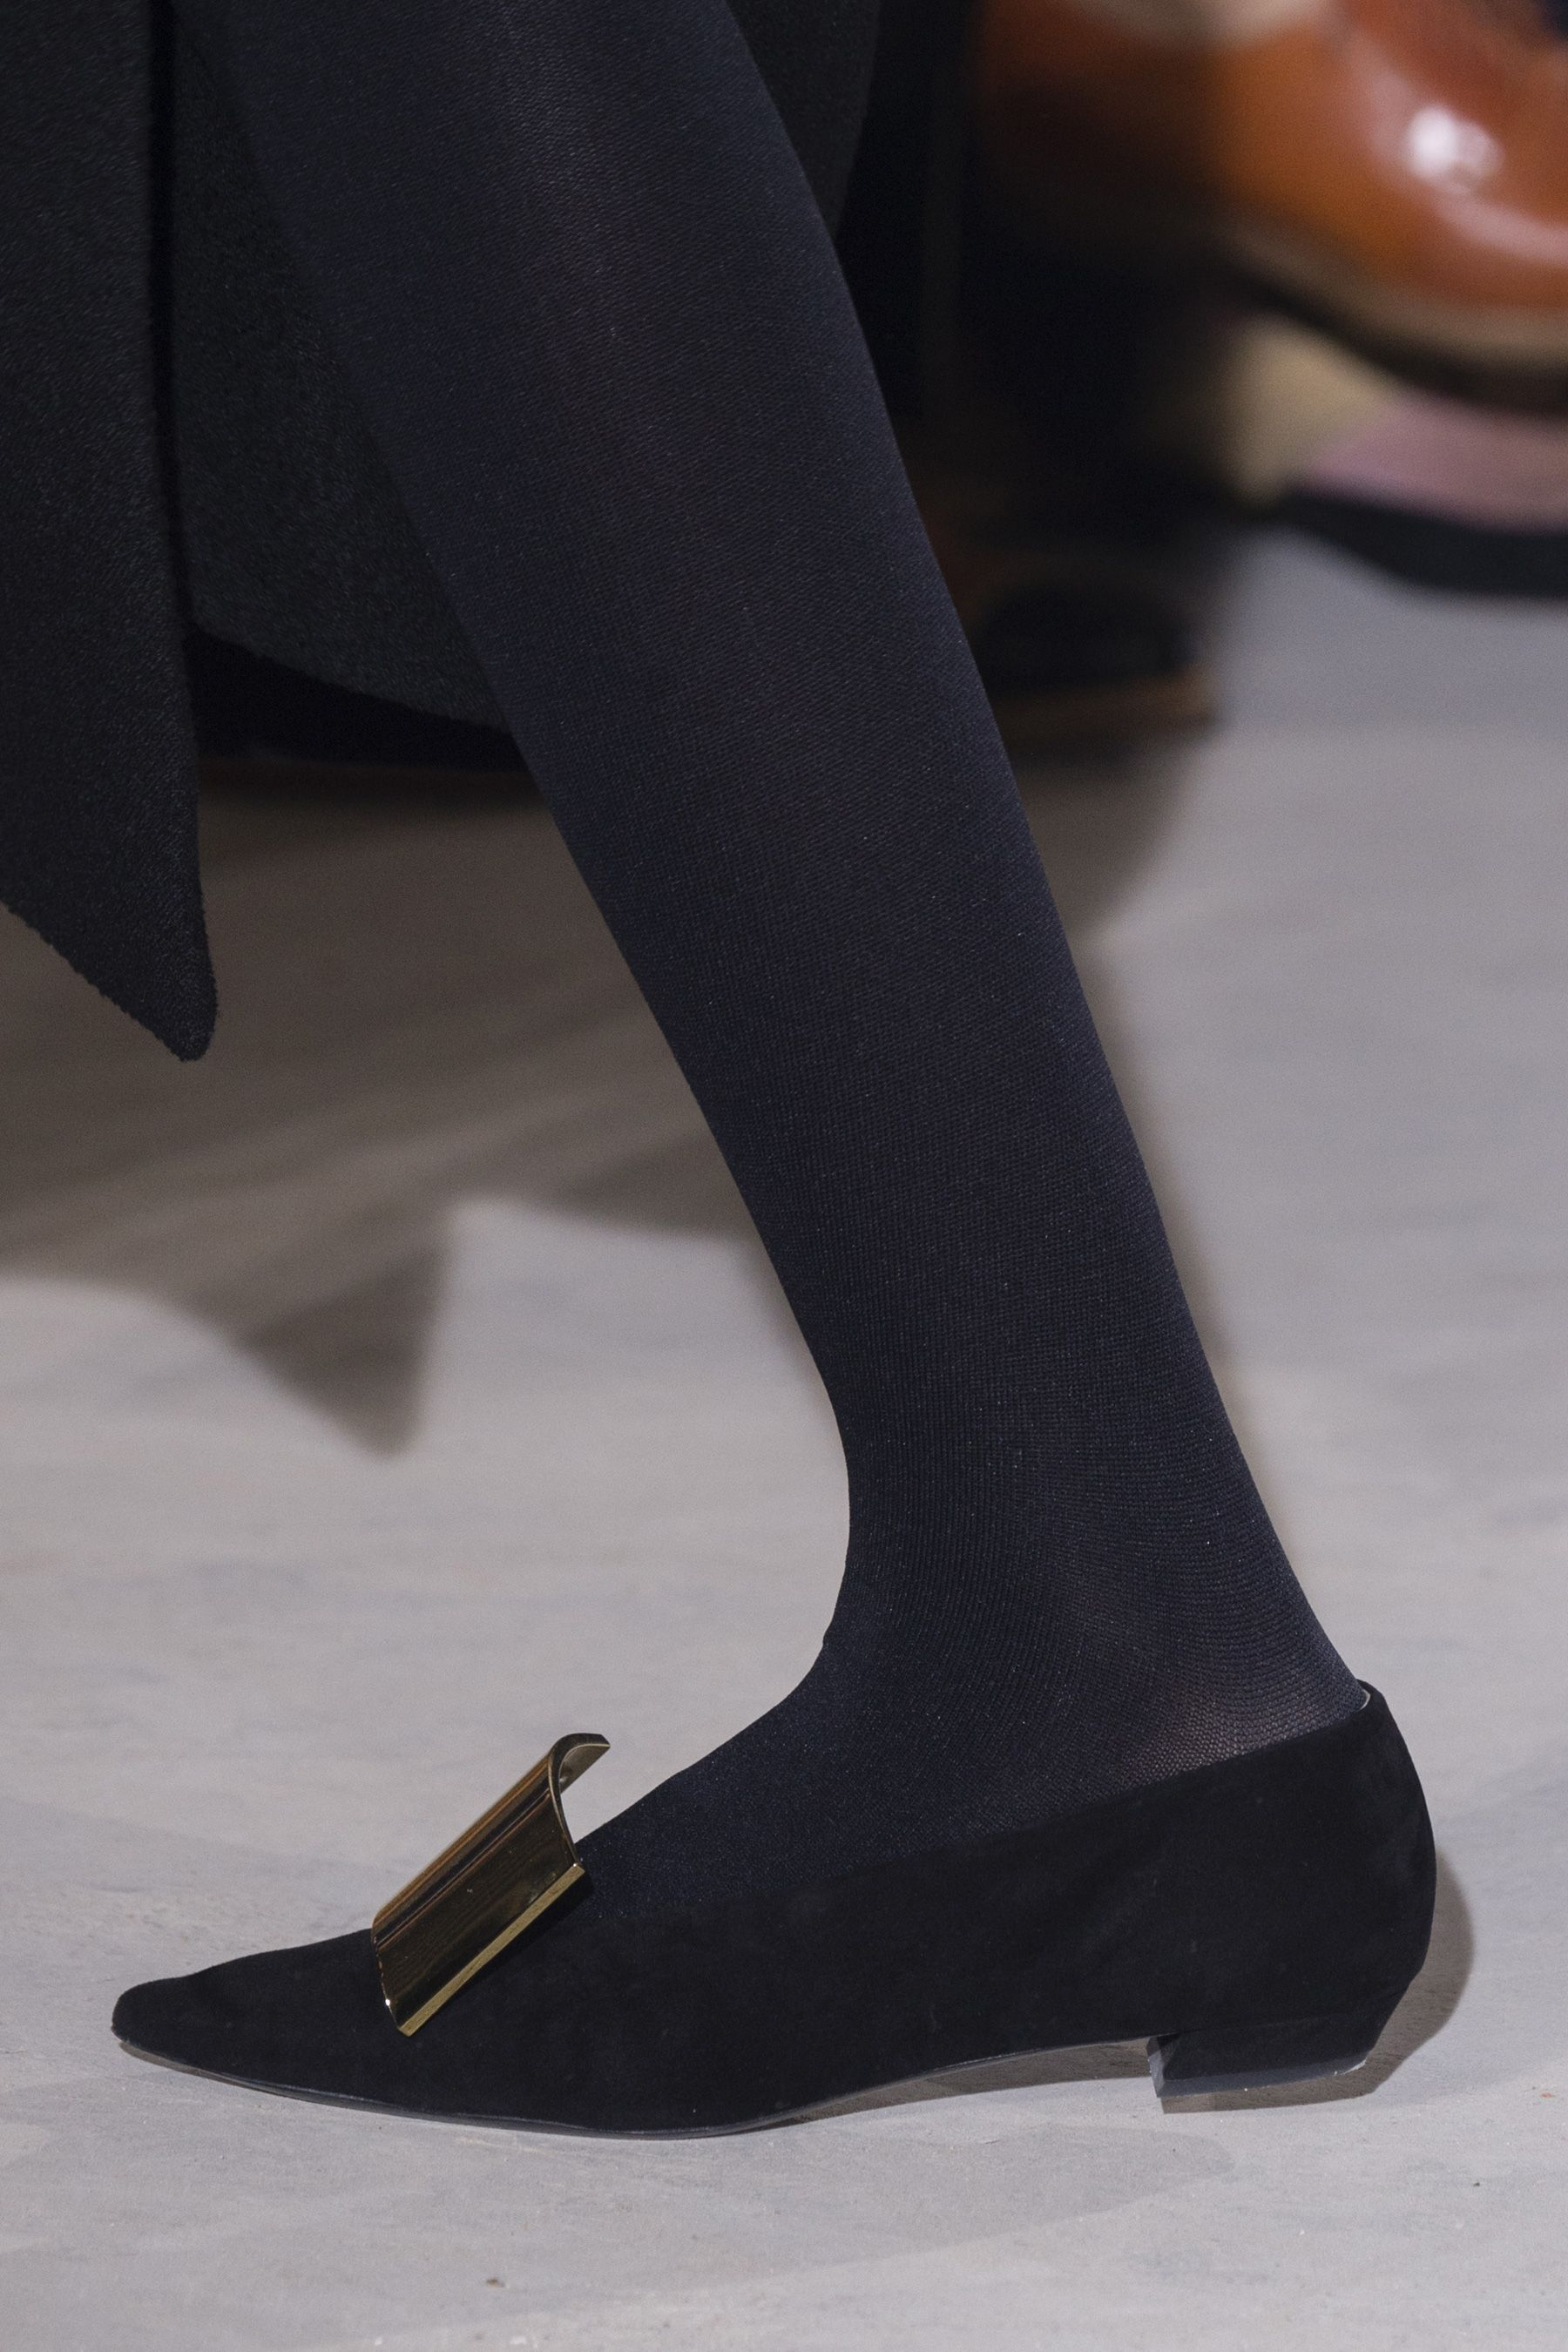 f457aada066b Proenza Schouler Fall 2018 Fashion Show Details - The Impression Sandales,  Talons, Chaussure,